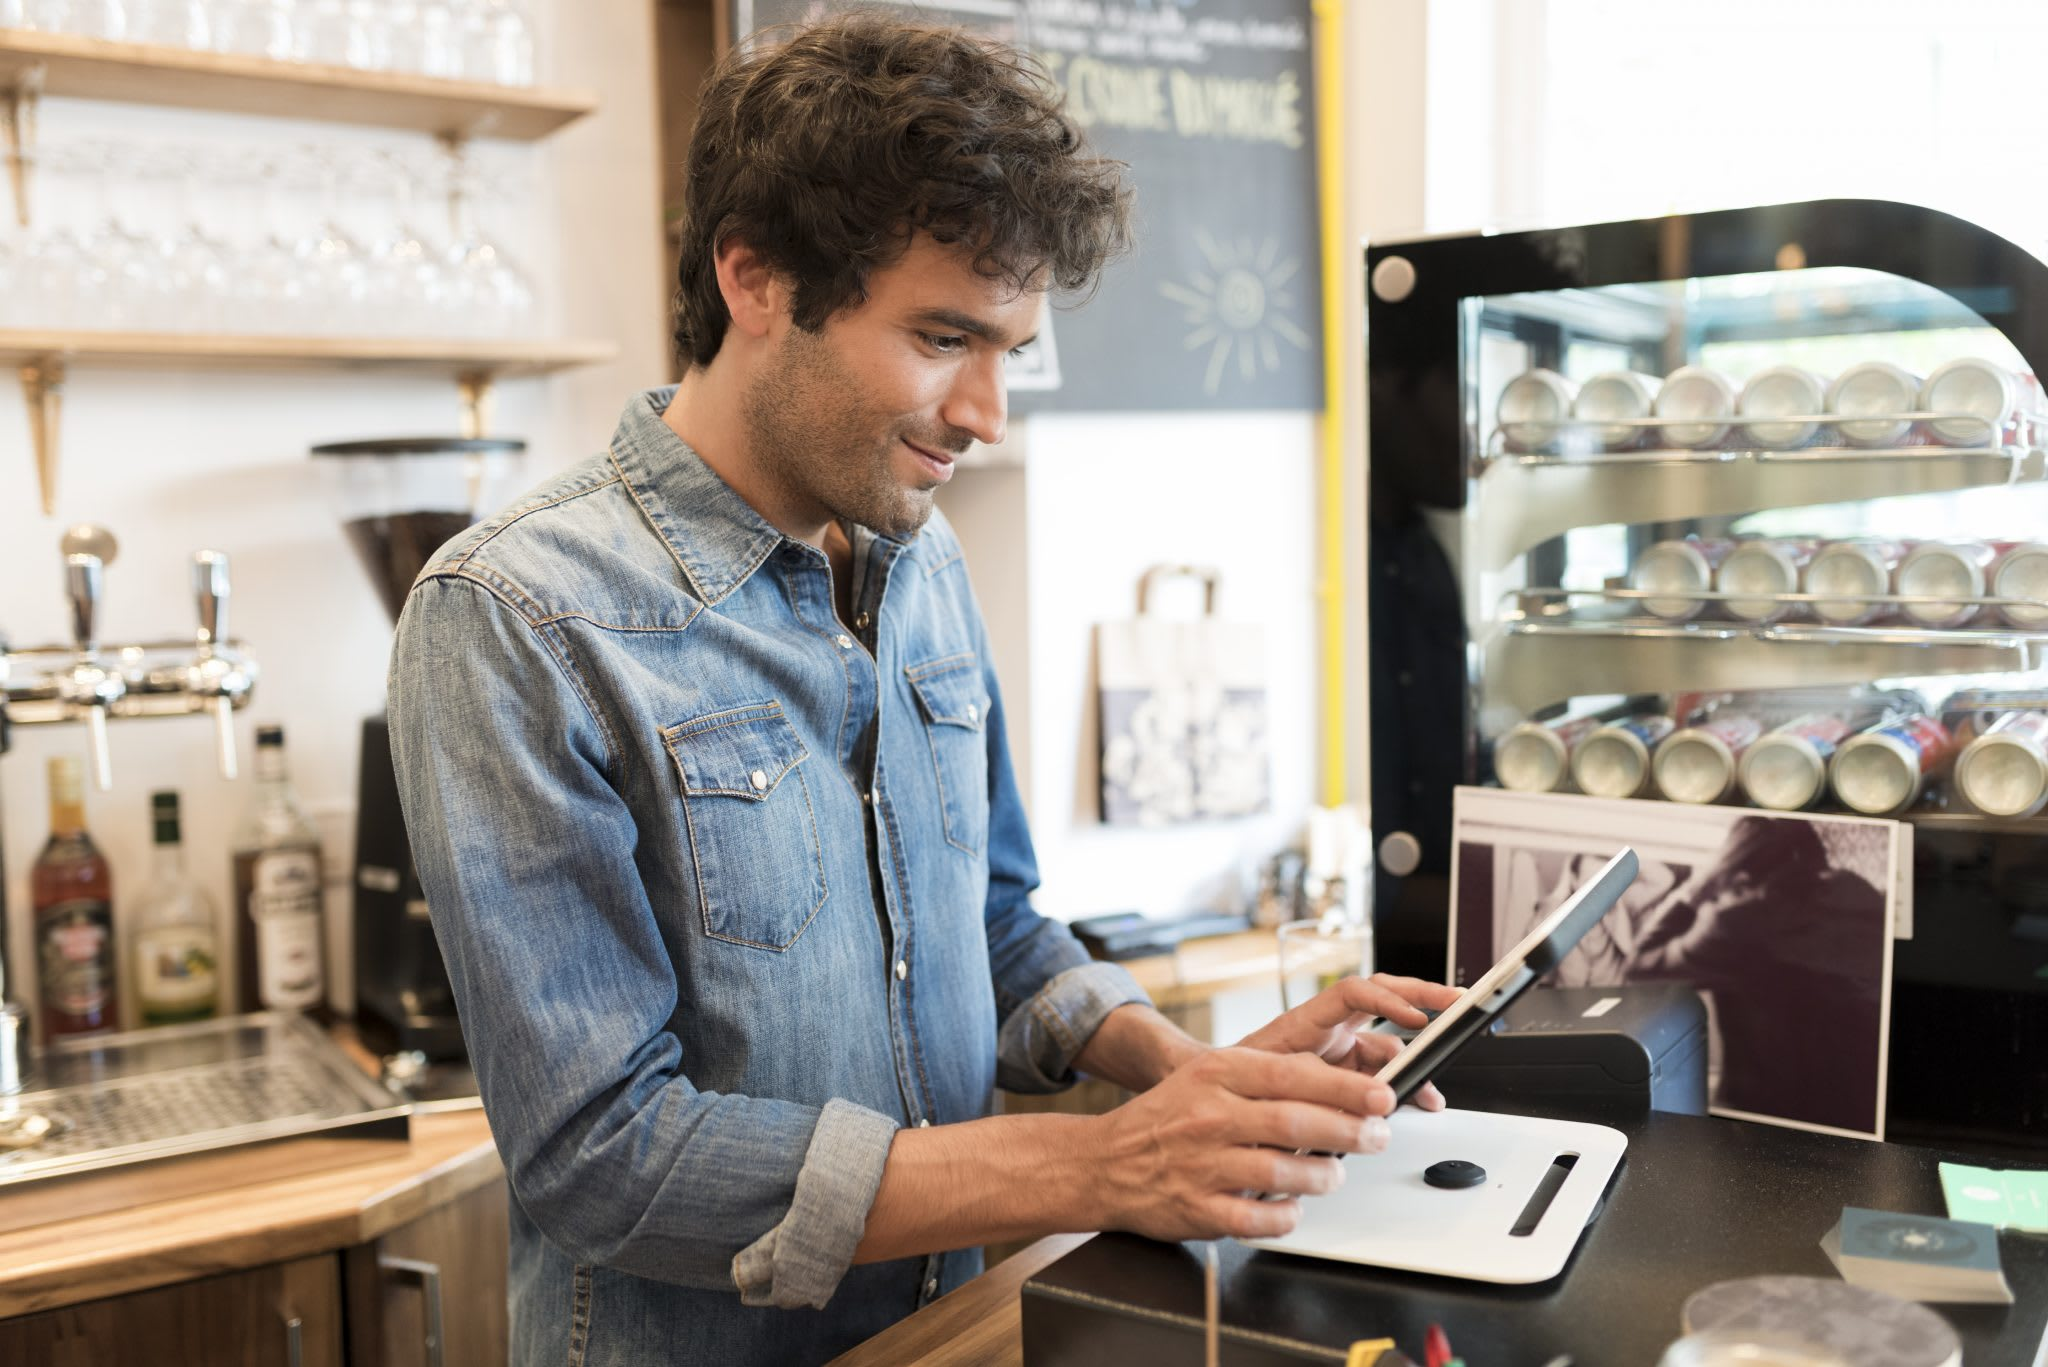 15 Essential Restaurant Management Tools You Didn't Know You Needed